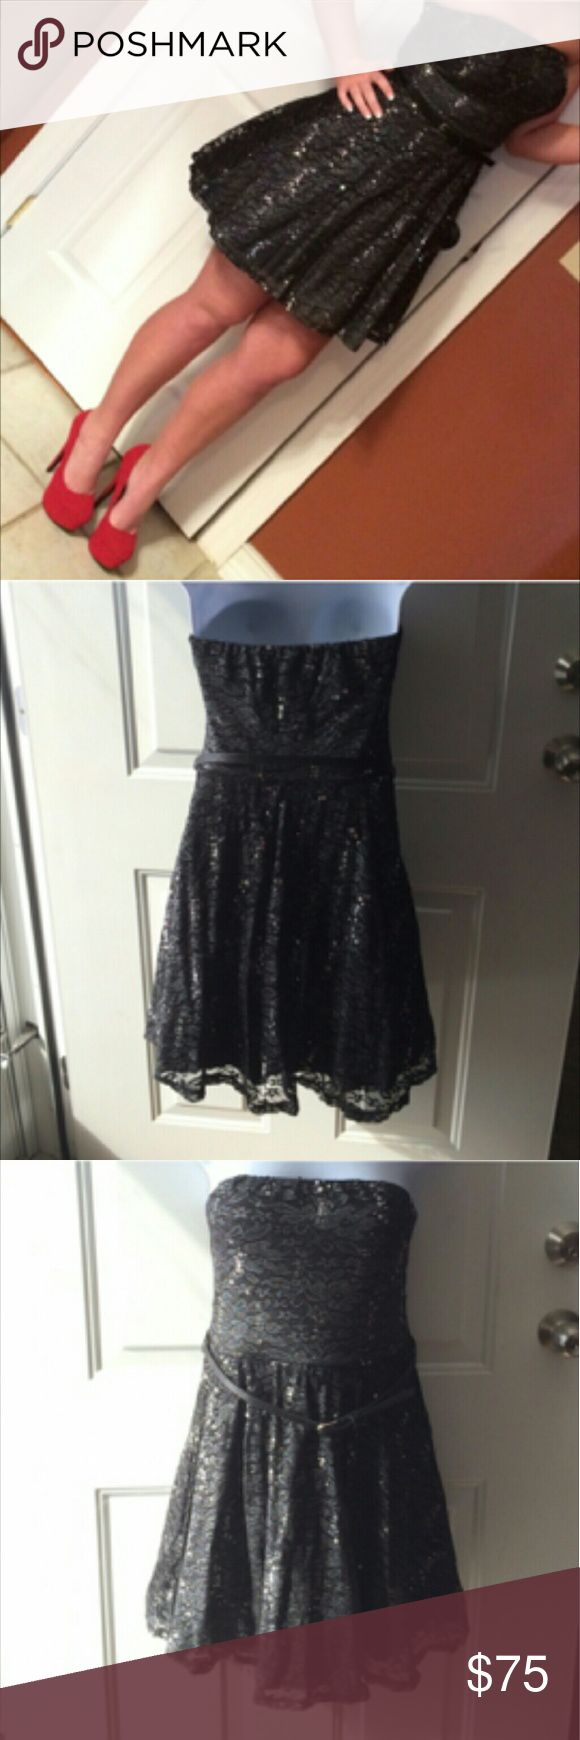 Short Black Formal Dress LBD Sequins Sparkle Prom Very cute short, black sequin formal dress. Size medium, comes with a belt. Worn once to Winter Formal dance.   Smoke free home. I will gladly bundle items to give you a discount (the more you buy, the cheaper I can let everything go!). Many items can be added on for only $1.  MAKE AN OFFER! love reign Dresses Prom